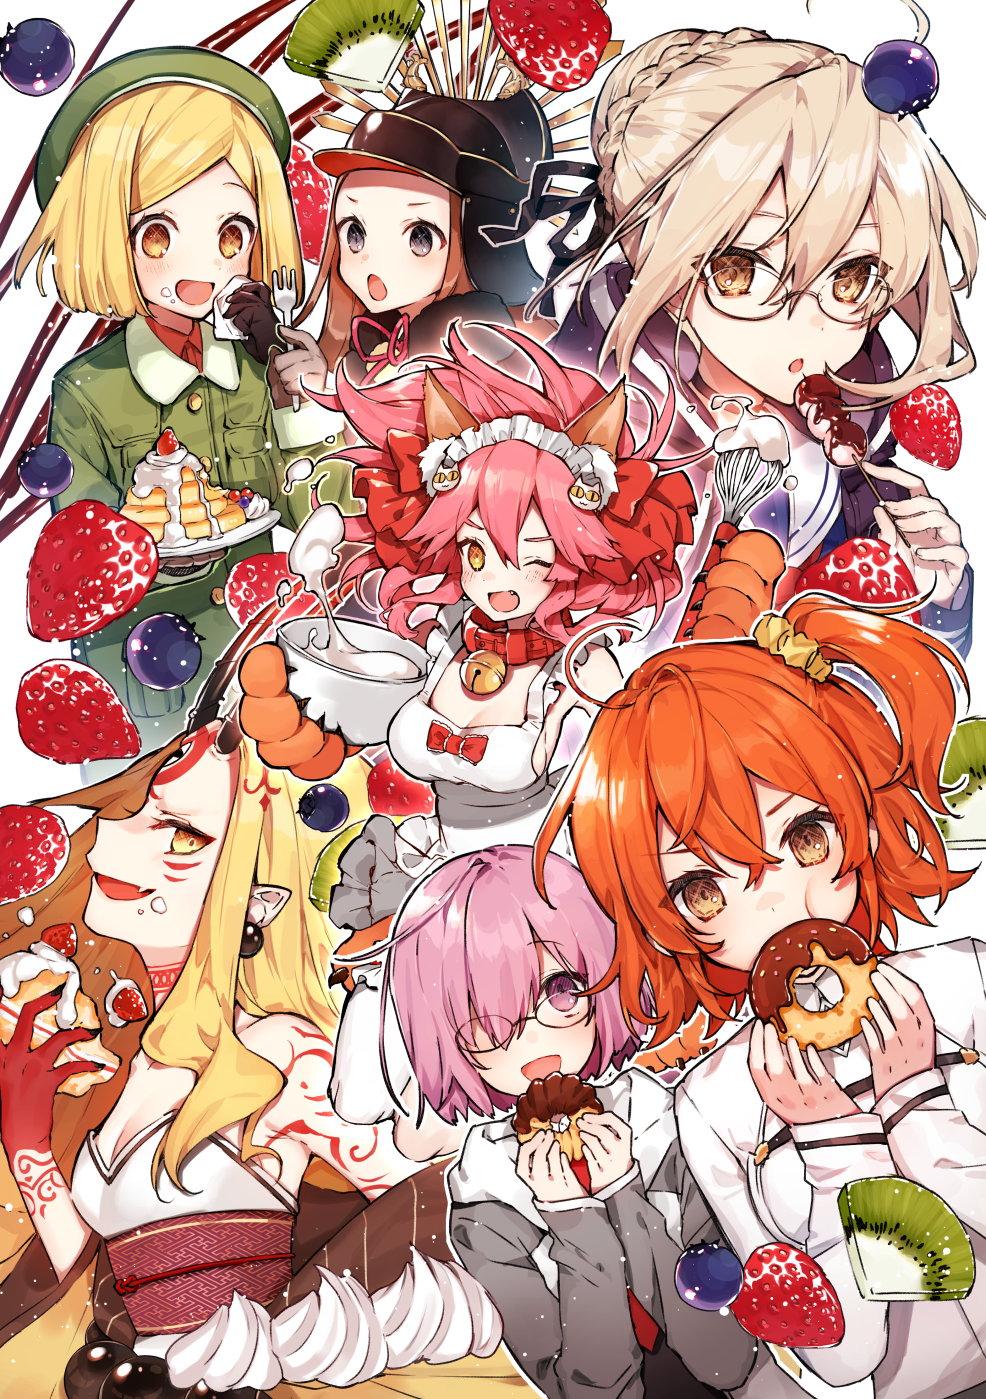 6+girls ahoge animal_ear_fluff animal_ears apron artoria_pendragon_(all) bangs bare_shoulders bell bell_collar beret black-framed_eyewear black_dress blonde_hair blueberry blush bow bowl braid breasts brown_hair cake cat_hair_ornament cat_paws chacha_(fate/grand_order) chaldea_uniform coat collar cream dango doughnut dress duffel_coat earrings eating facial_mark family_crest fang fate/extra fate/grand_order fate_(series) fingernails food forehead forehead_mark fork fox_ears fox_girl french_braid fruit fujimaru_ritsuka_(female) glasses gloves green_coat green_headwear grey_eyes grey_jacket hair_between_eyes hair_bow hair_bun hair_ornament hair_over_one_eye hair_scrunchie hanakeda_(hanada_shiwo) hat helmet highres hood hooded_coat hooded_jacket horns ibaraki_douji_(fate/grand_order) jacket japanese_clothes jewelry jingle_bell kimono kiwifruit koha-ace large_breasts lavender_hair long_hair long_sleeves looking_at_viewer maid_headdress mash_kyrielight medium_breasts multiple_girls mysterious_heroine_x_(alter) naked_apron napkin necktie obi oda_uri one_eye_closed one_side_up oni oni_horns open_clothes open_coat open_mouth orange_eyes orange_hair pancake parted_bangs paul_bunyan_(fate/grand_order) paw_gloves paws pink_hair pointy_ears ponytail purple_jacket red_bow sash scrunchie semi-rimless_eyewear sharp_fingernails shirt short_hair side_ponytail sidelocks simple_background skewer slice_of_cake small_breasts smile strawberry strawberry_shortcake tamamo_(fate)_(all) tamamo_cat_(fate) tattoo under-rim_eyewear violet_eyes wagashi whipped_cream whisk white_background white_shirt yellow_eyes yellow_kimono